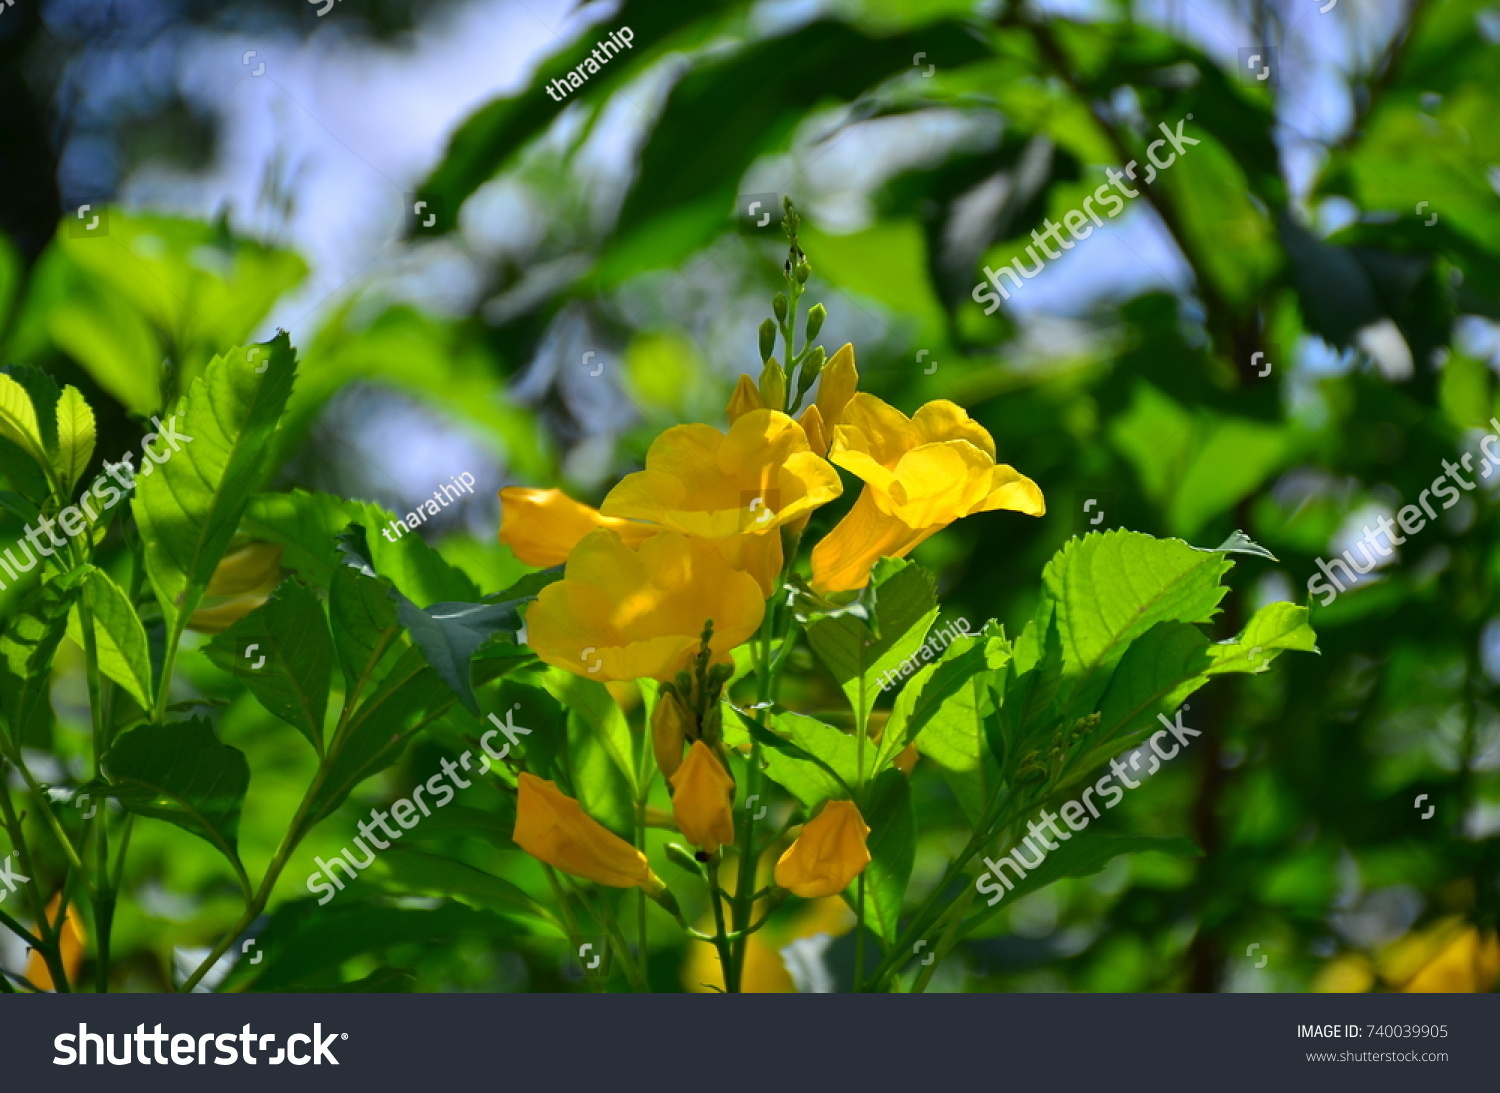 Beautiful yellow flowers in the garden ez canvas id 740039905 izmirmasajfo